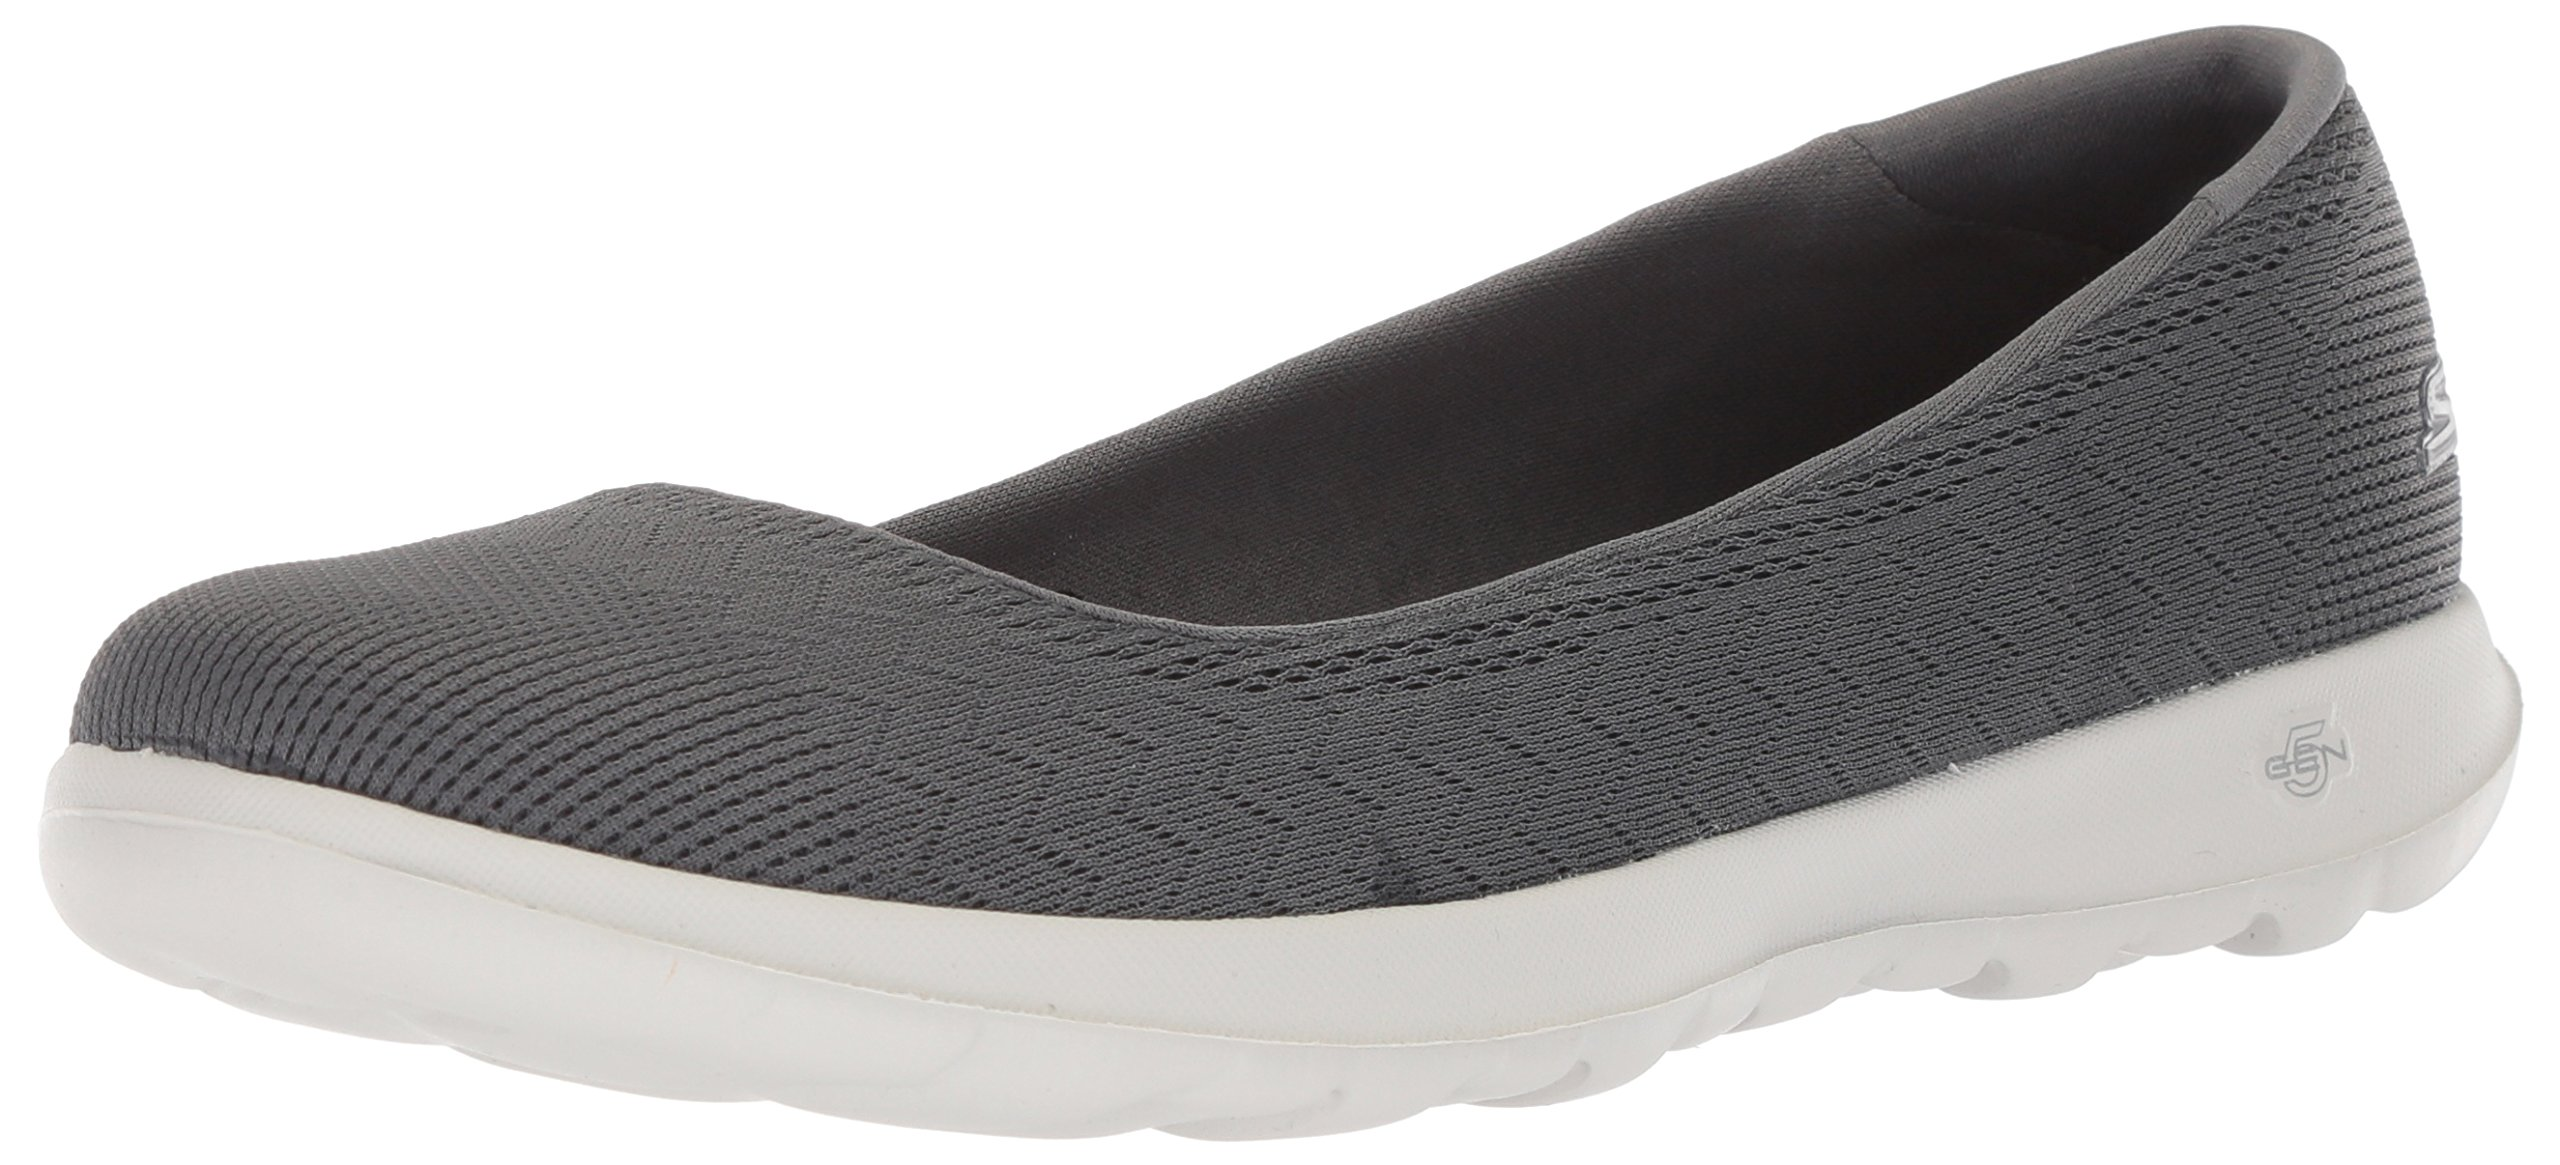 Skechers Performance Women's GO Walk Lite Ballet Flat,Charcoal,6.5 M US